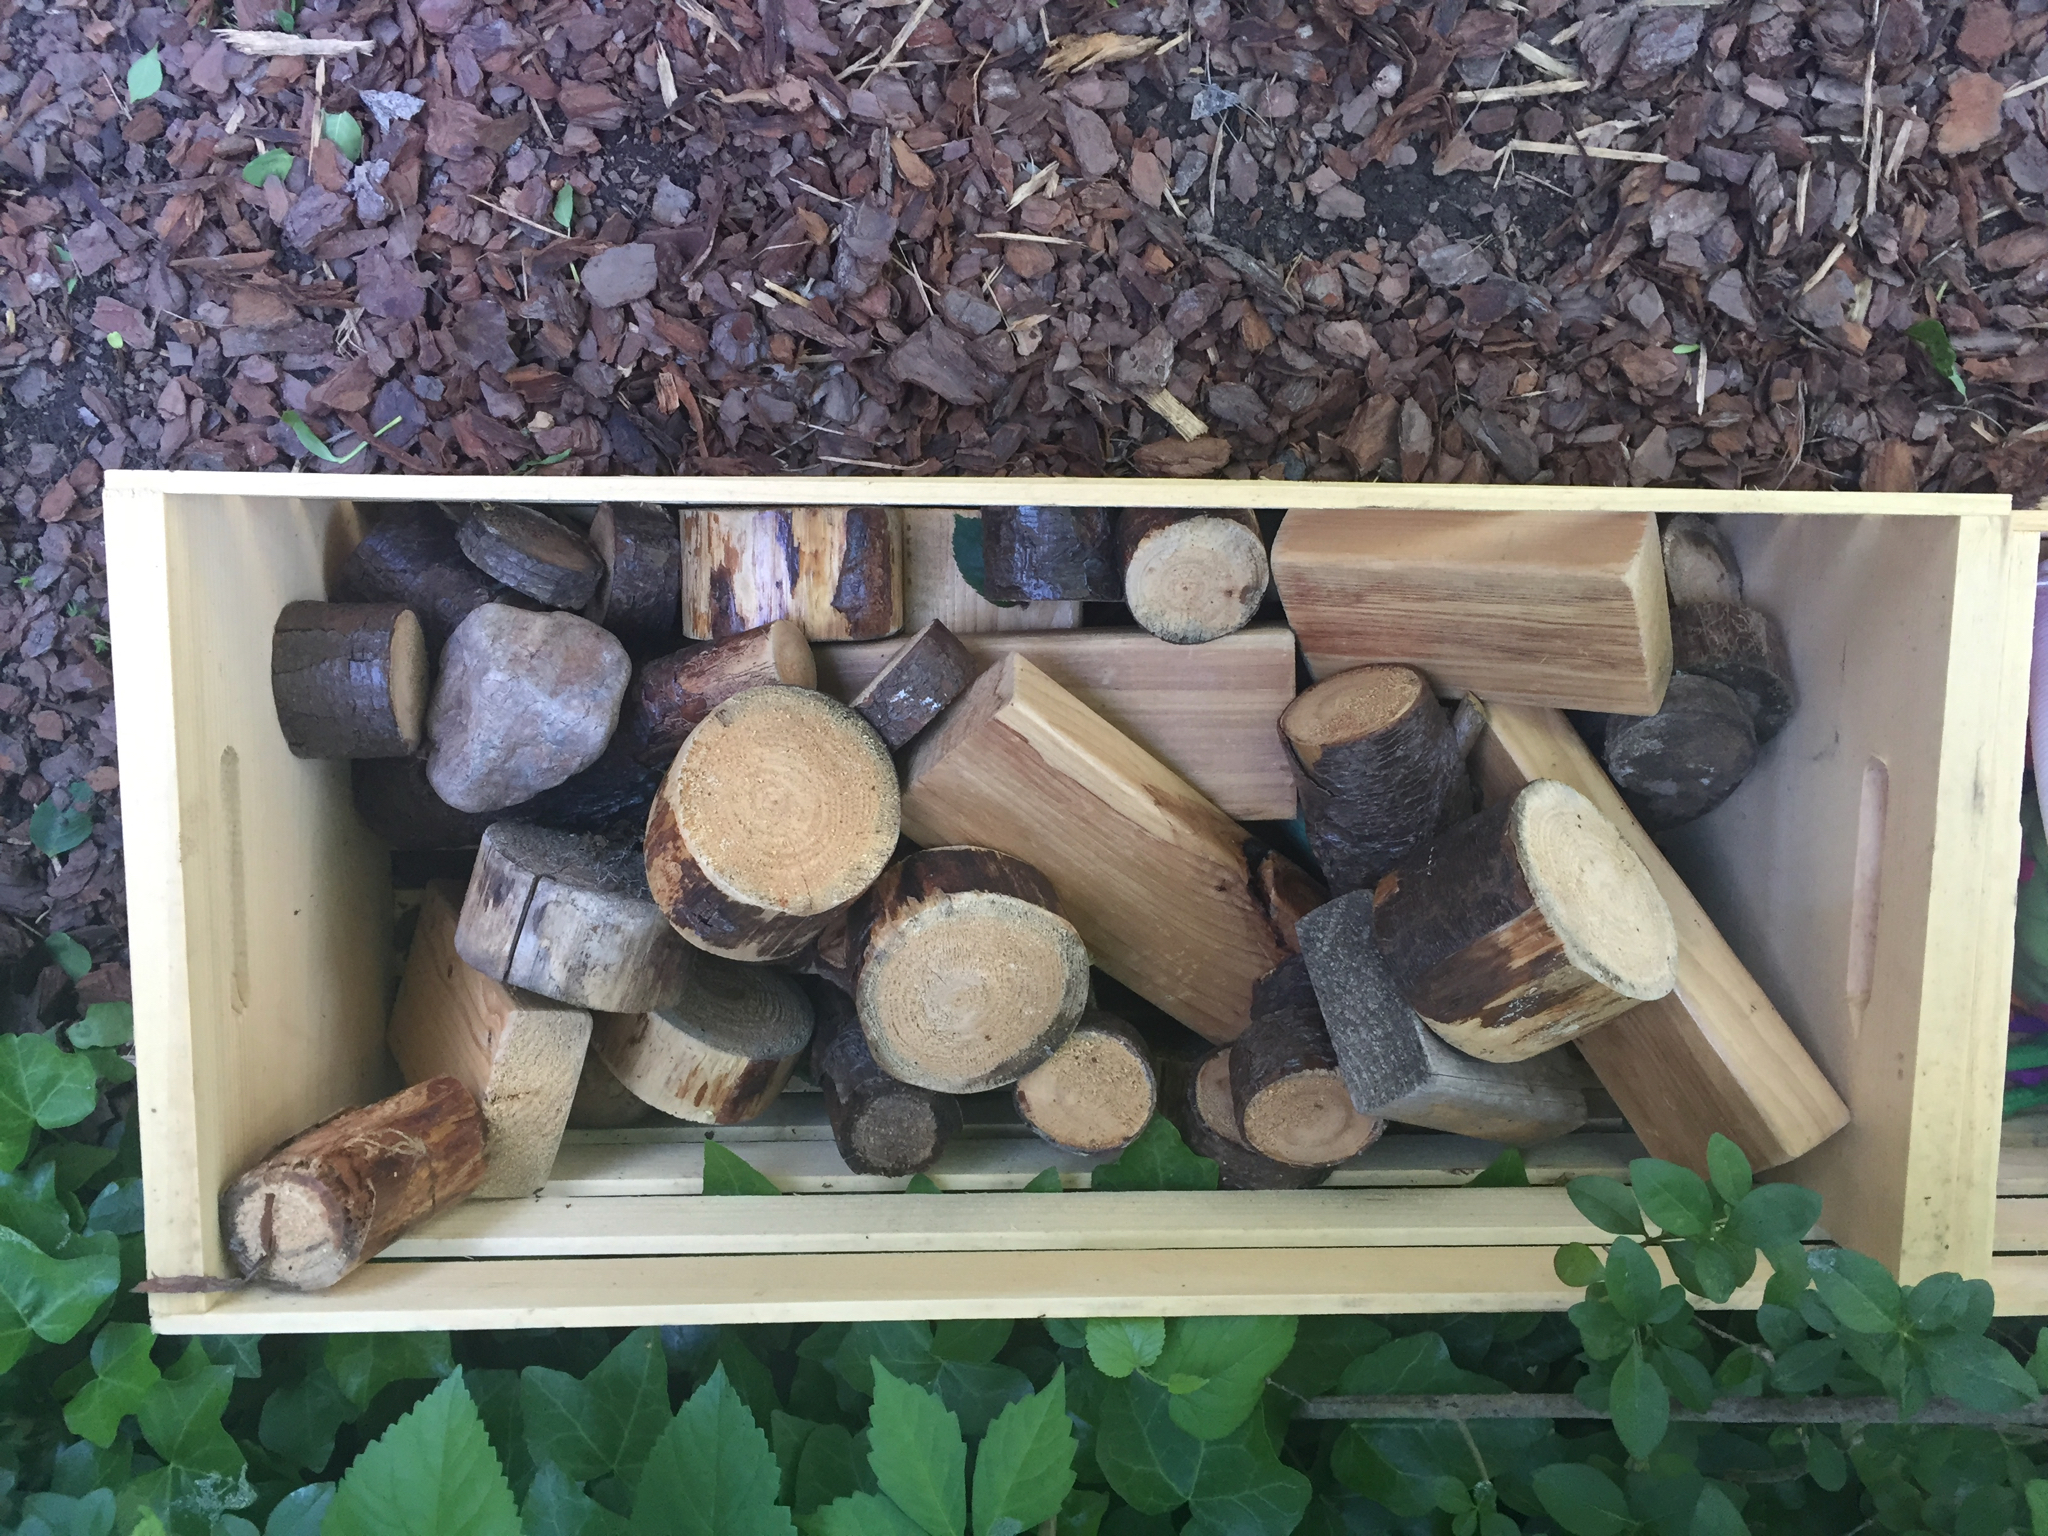 OUTDOOR BLOCKS  Materials: large, thick branches cut into stumps and sanded, 2X4's cut and sanded (they will do this for you at Home Depot), non-toxic outdoor wood stain. You can also buy  some pre-made ones!   Process: If you have power tools, this is an easy project to do at home—otherwise enlist your favorite contractor or handy friend to make these simple blocks for you. Store in a bin outdoors where water won't collect. Use for outdoor building projects or to decorate a garden together.  Words: stack, balance, build, fall, shape words, ramp  Questions: What did you make? Tell me about…. I wonder if? What if we…